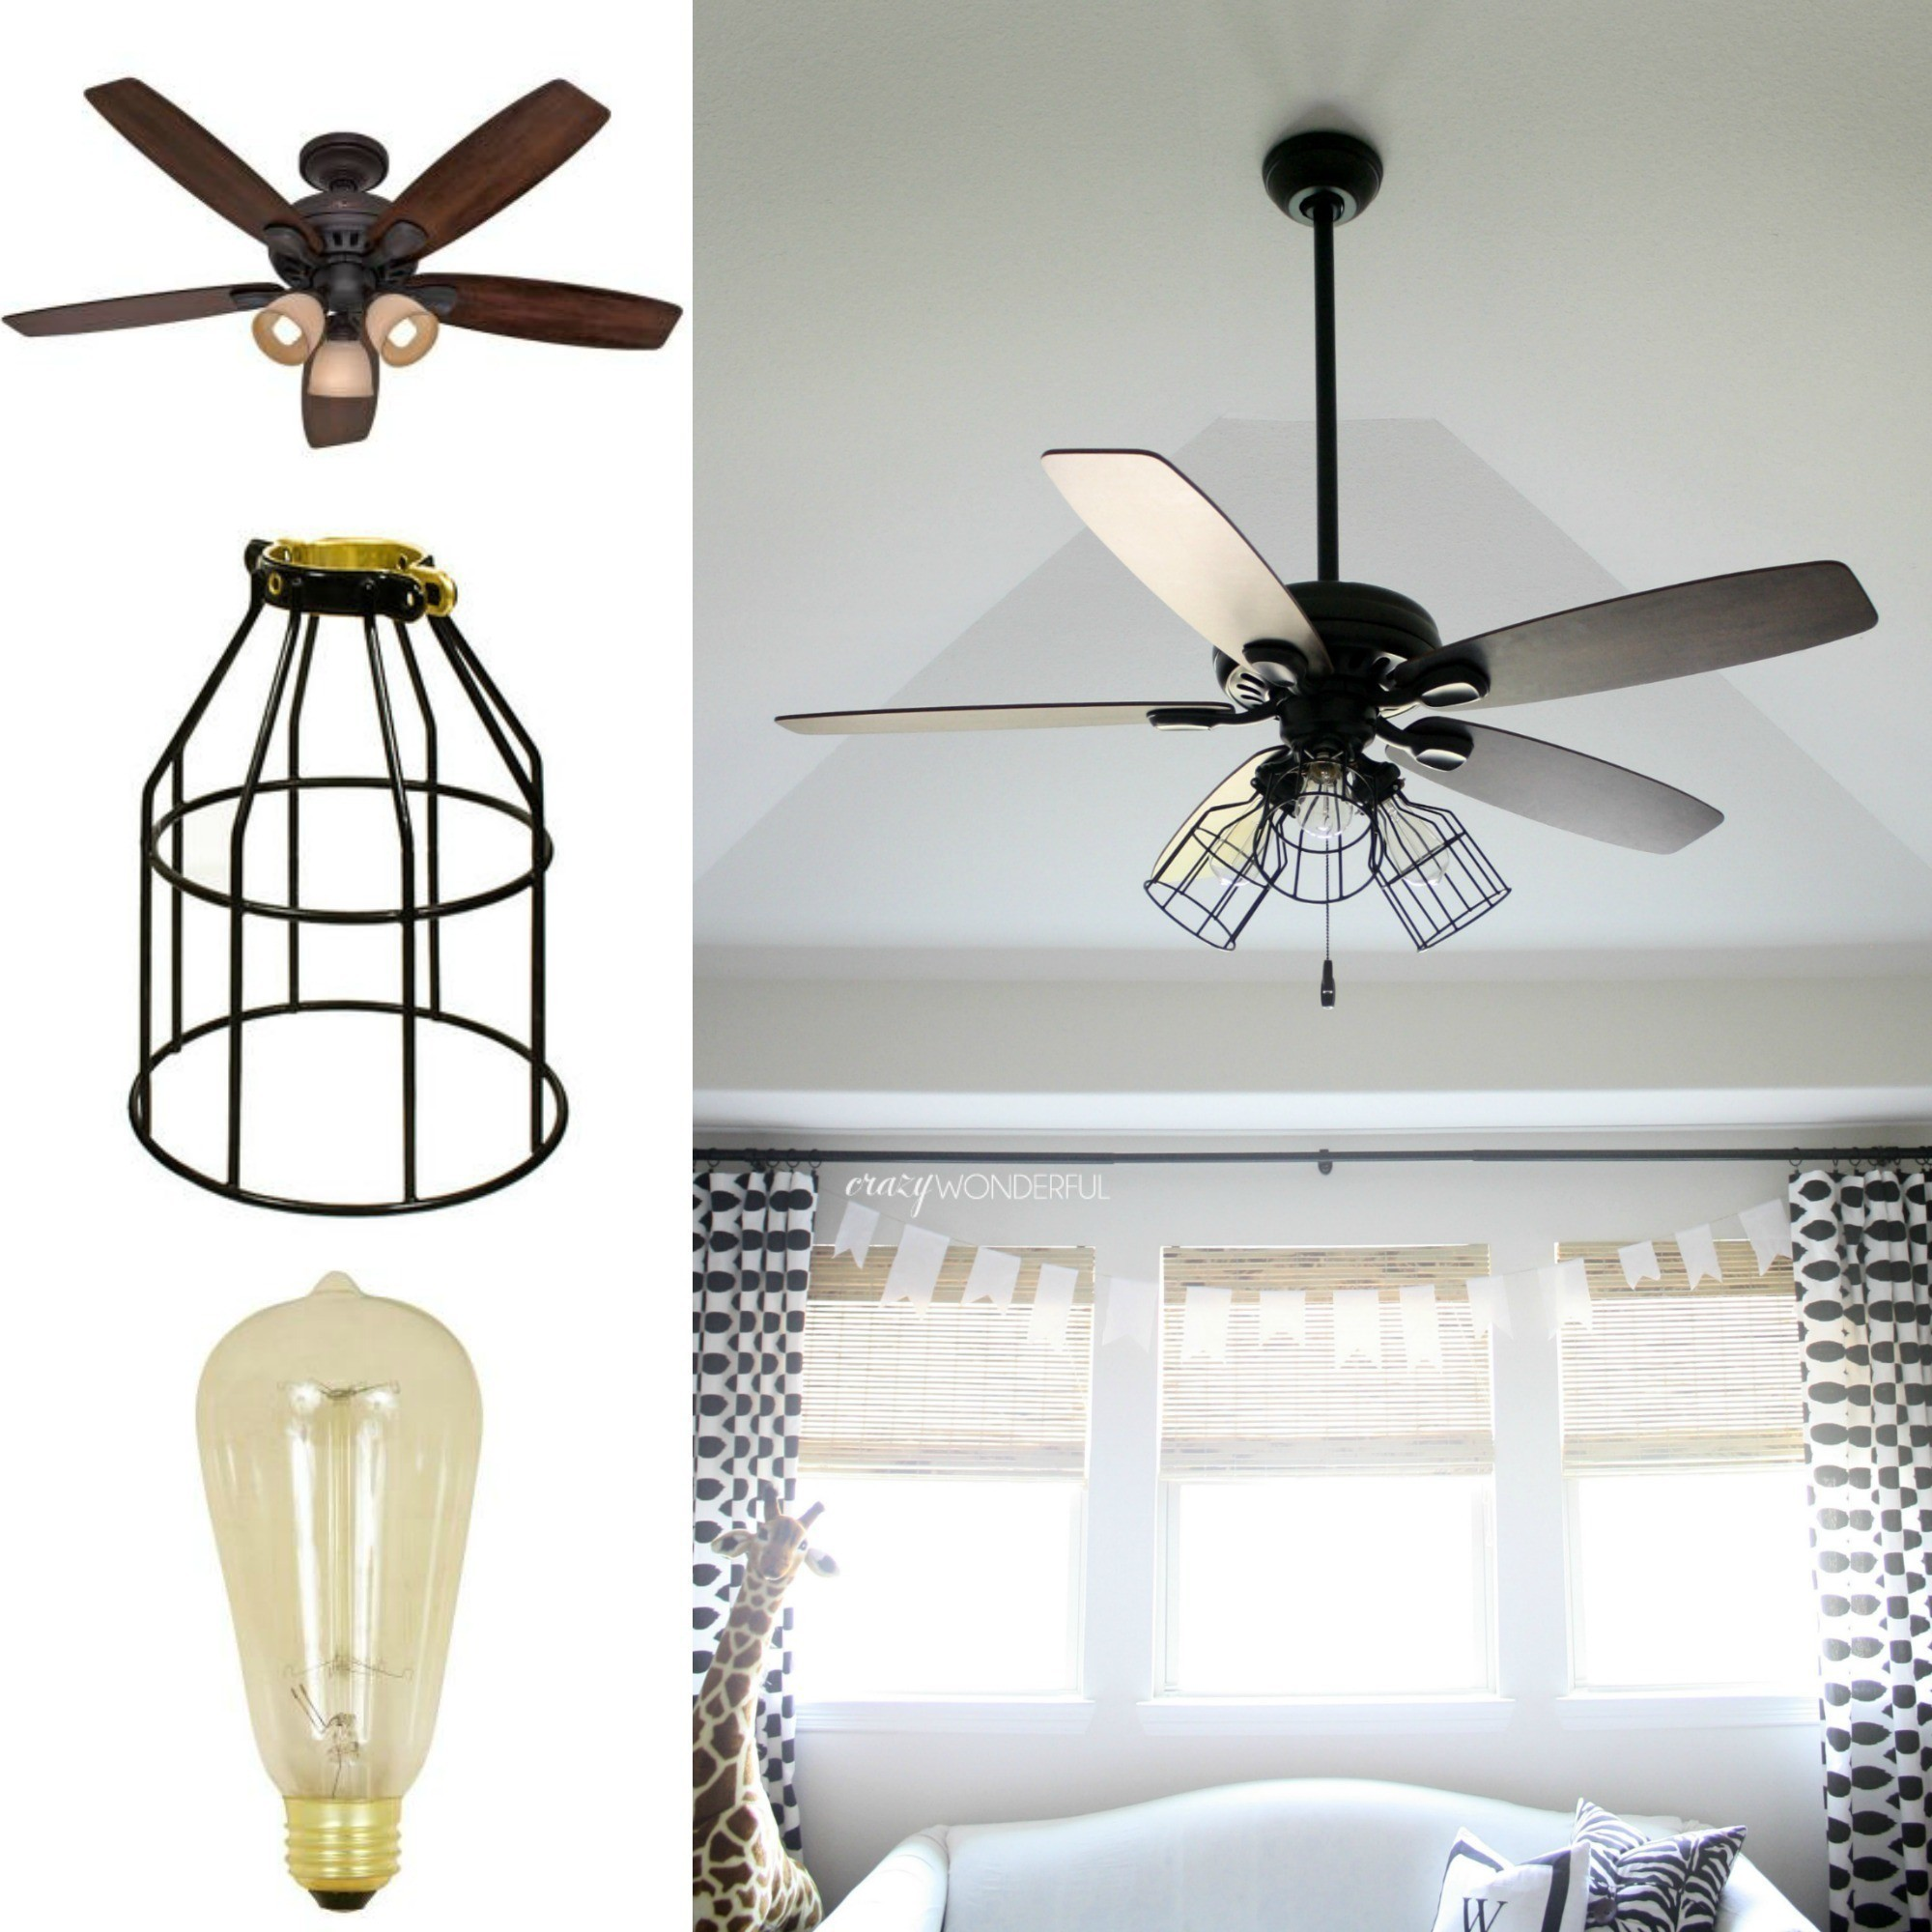 Rustic Ceiling Fan Light Fixtures Diy Cage Light Ceiling Fan A Hanging Light Home Diy On Cut